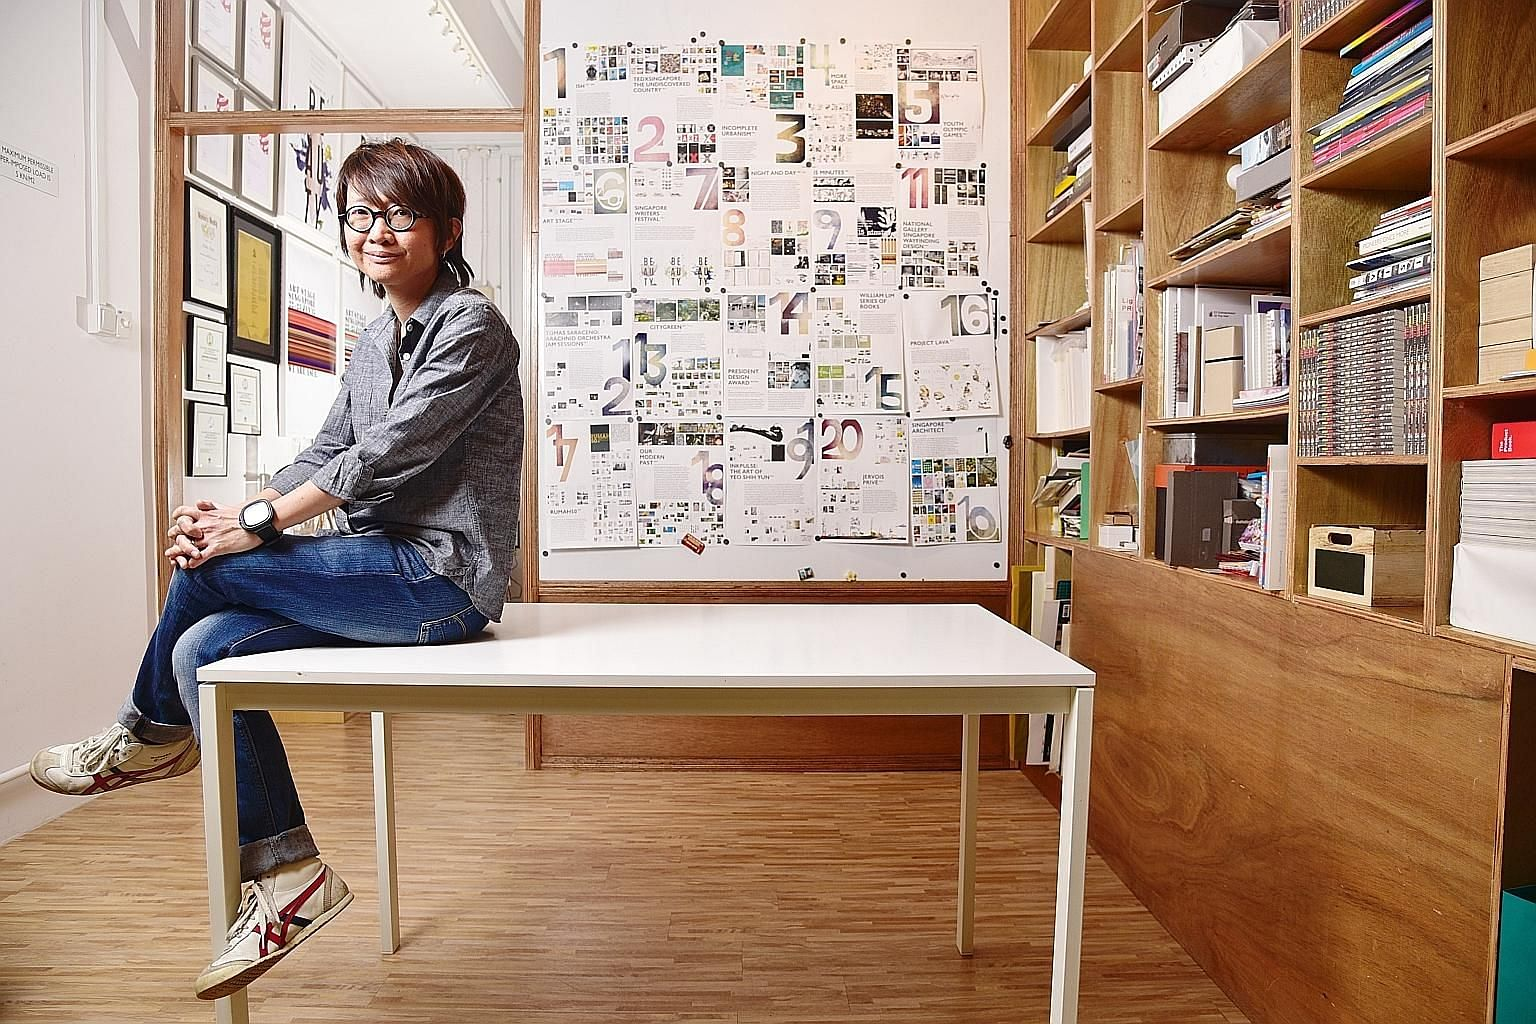 The 20-year career of Ms Kelley Cheng (above) is celebrated at a retrospective at the National Design Centre.